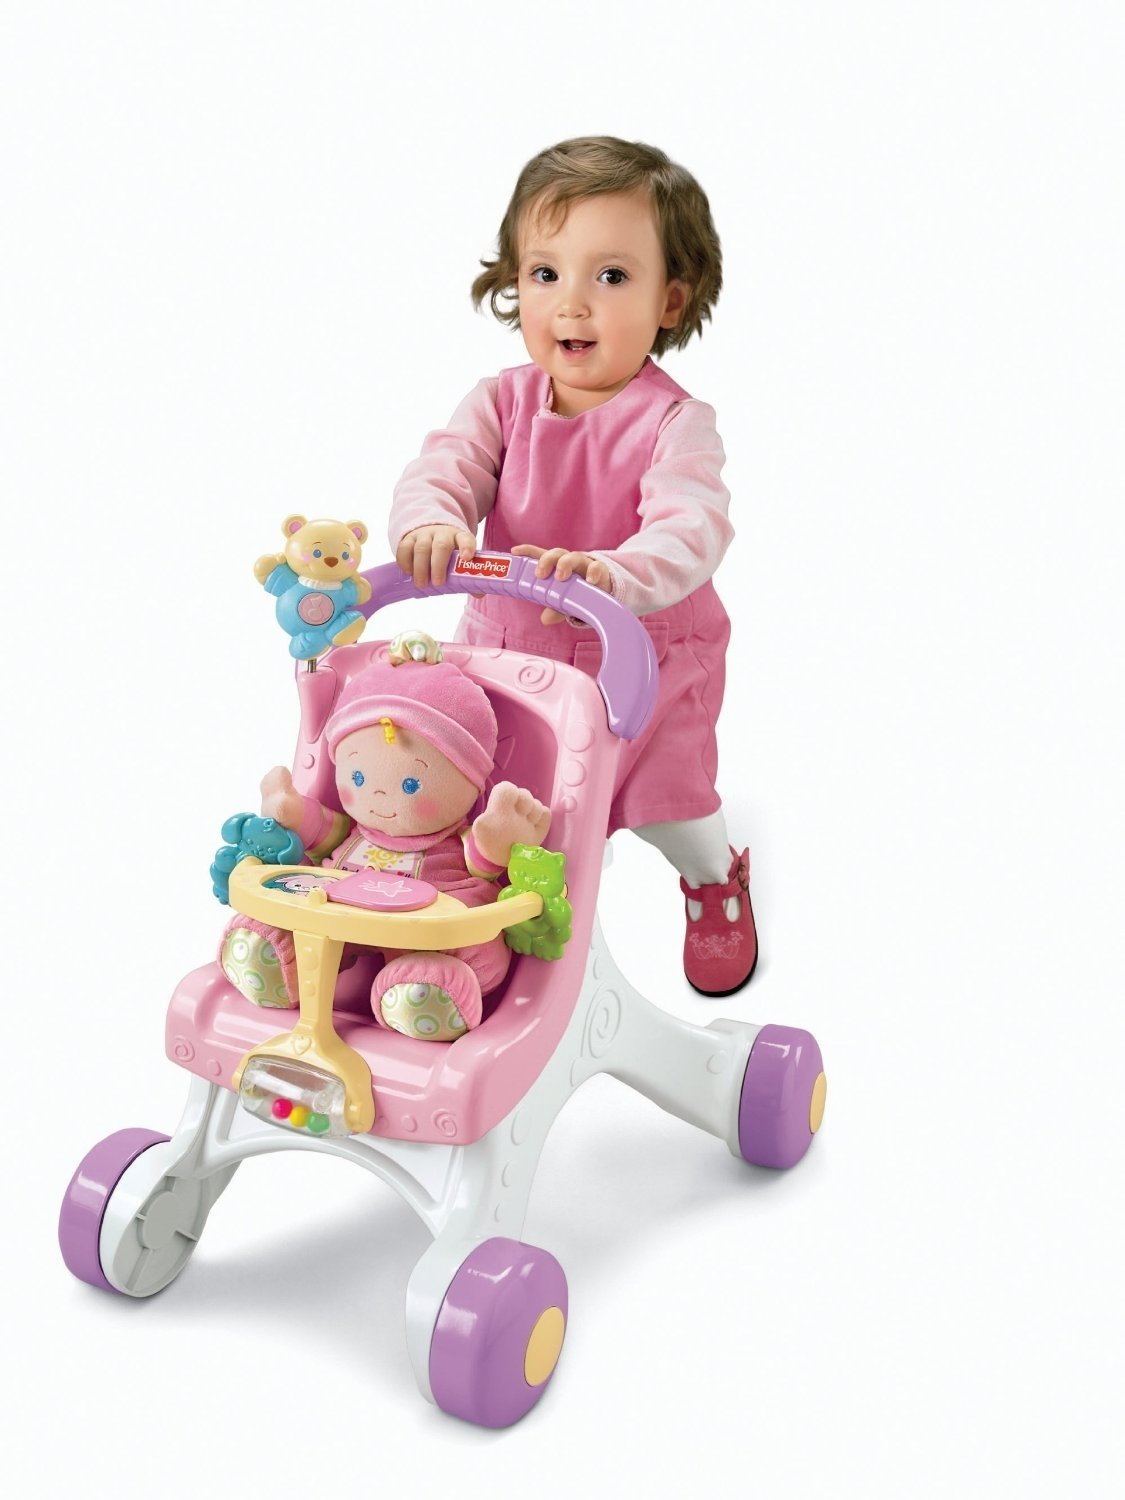 10 Lovely Gift Ideas For 1 Year Old Baby Girl toys for baby girl baby and kids 2020